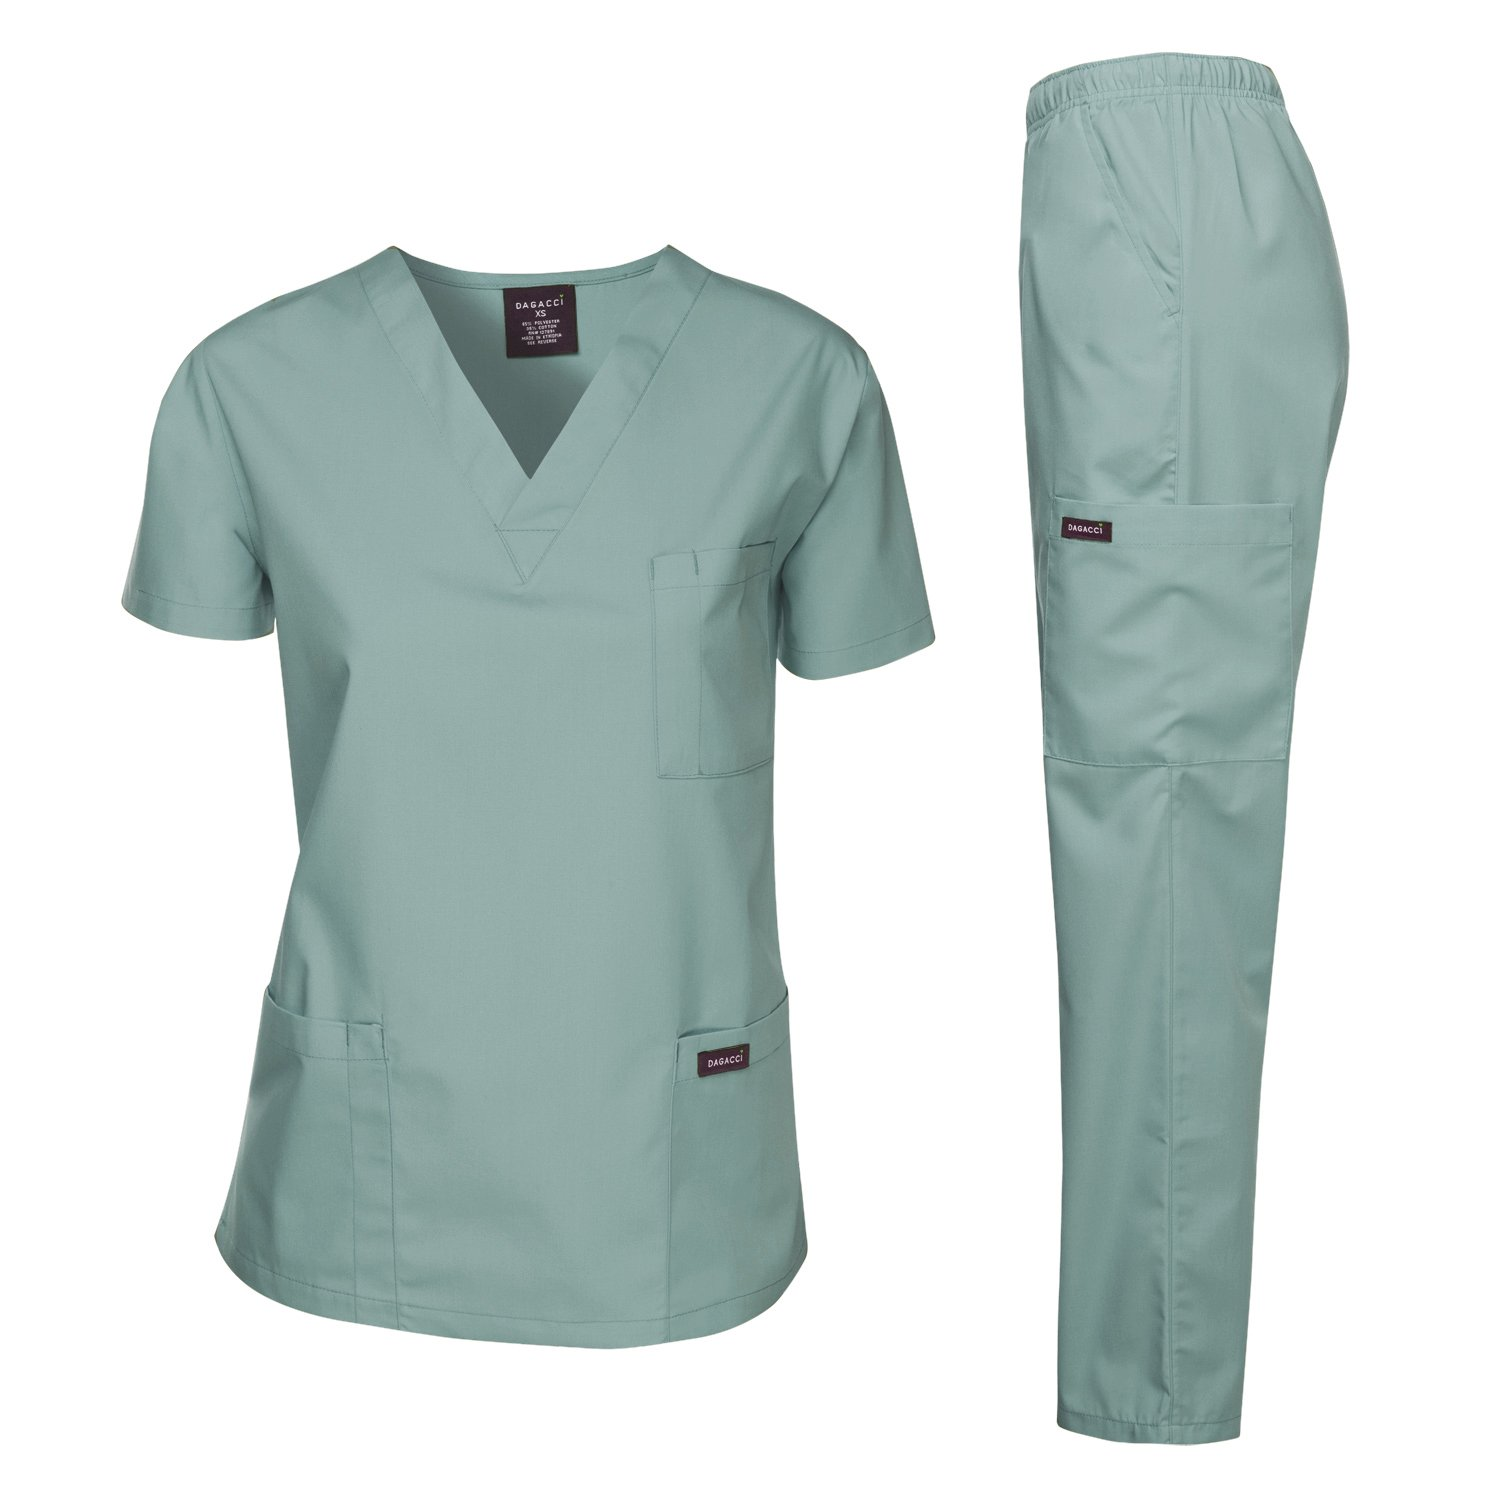 Dagacci Medical Scrubs Uniform Women and Man Scrubs Set Scrubs Medical Top and Pants (Seaform, X-Small)